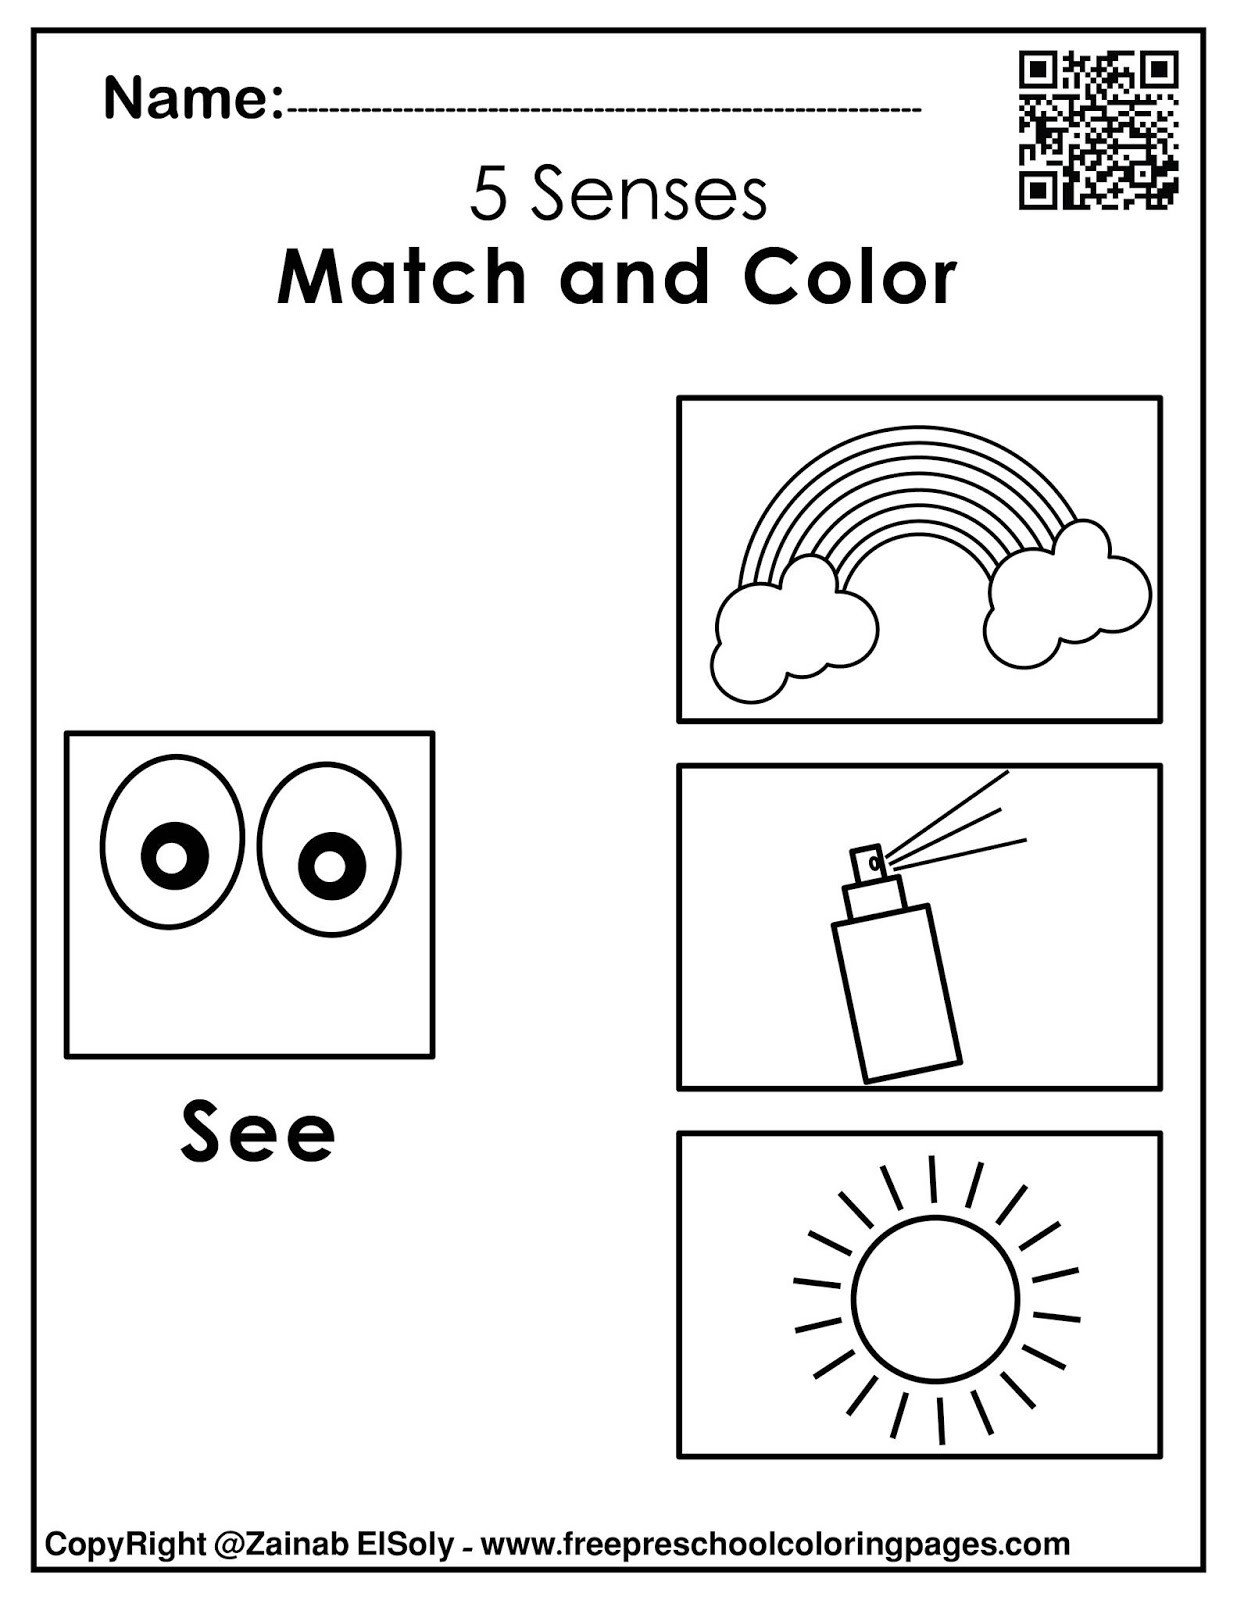 5 Senses Worksheets Preschool Set Of 5 Senses Activities for Kids